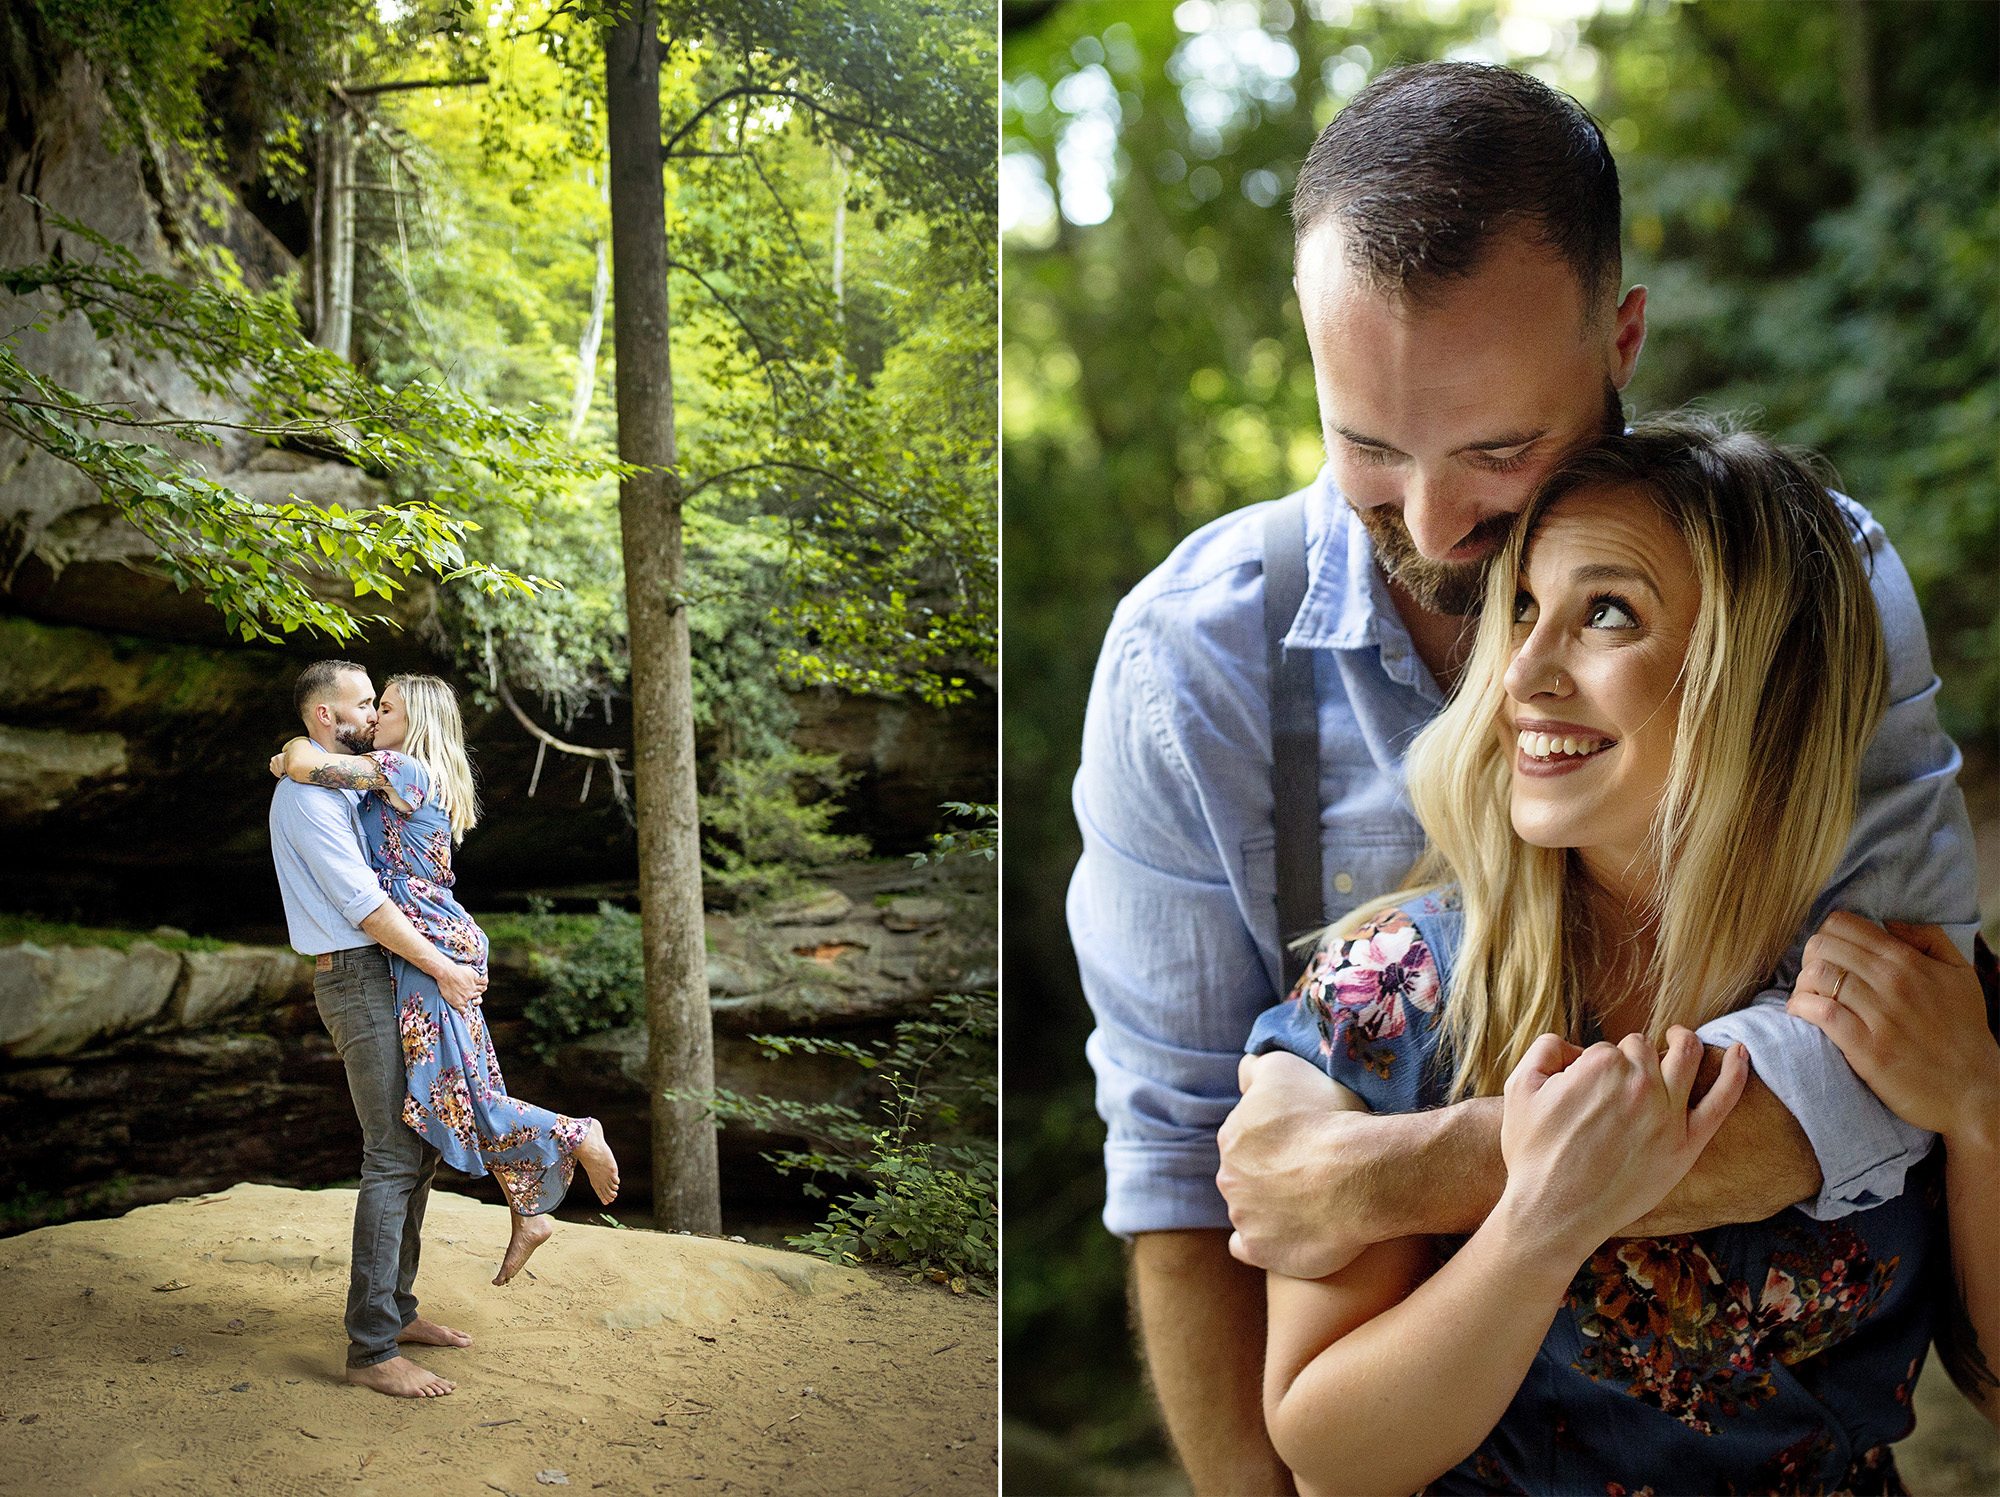 Seriously_Sabrina_Photography_Red_River_Gorge_Engagement_Session_Monika_Steven_6.jpg